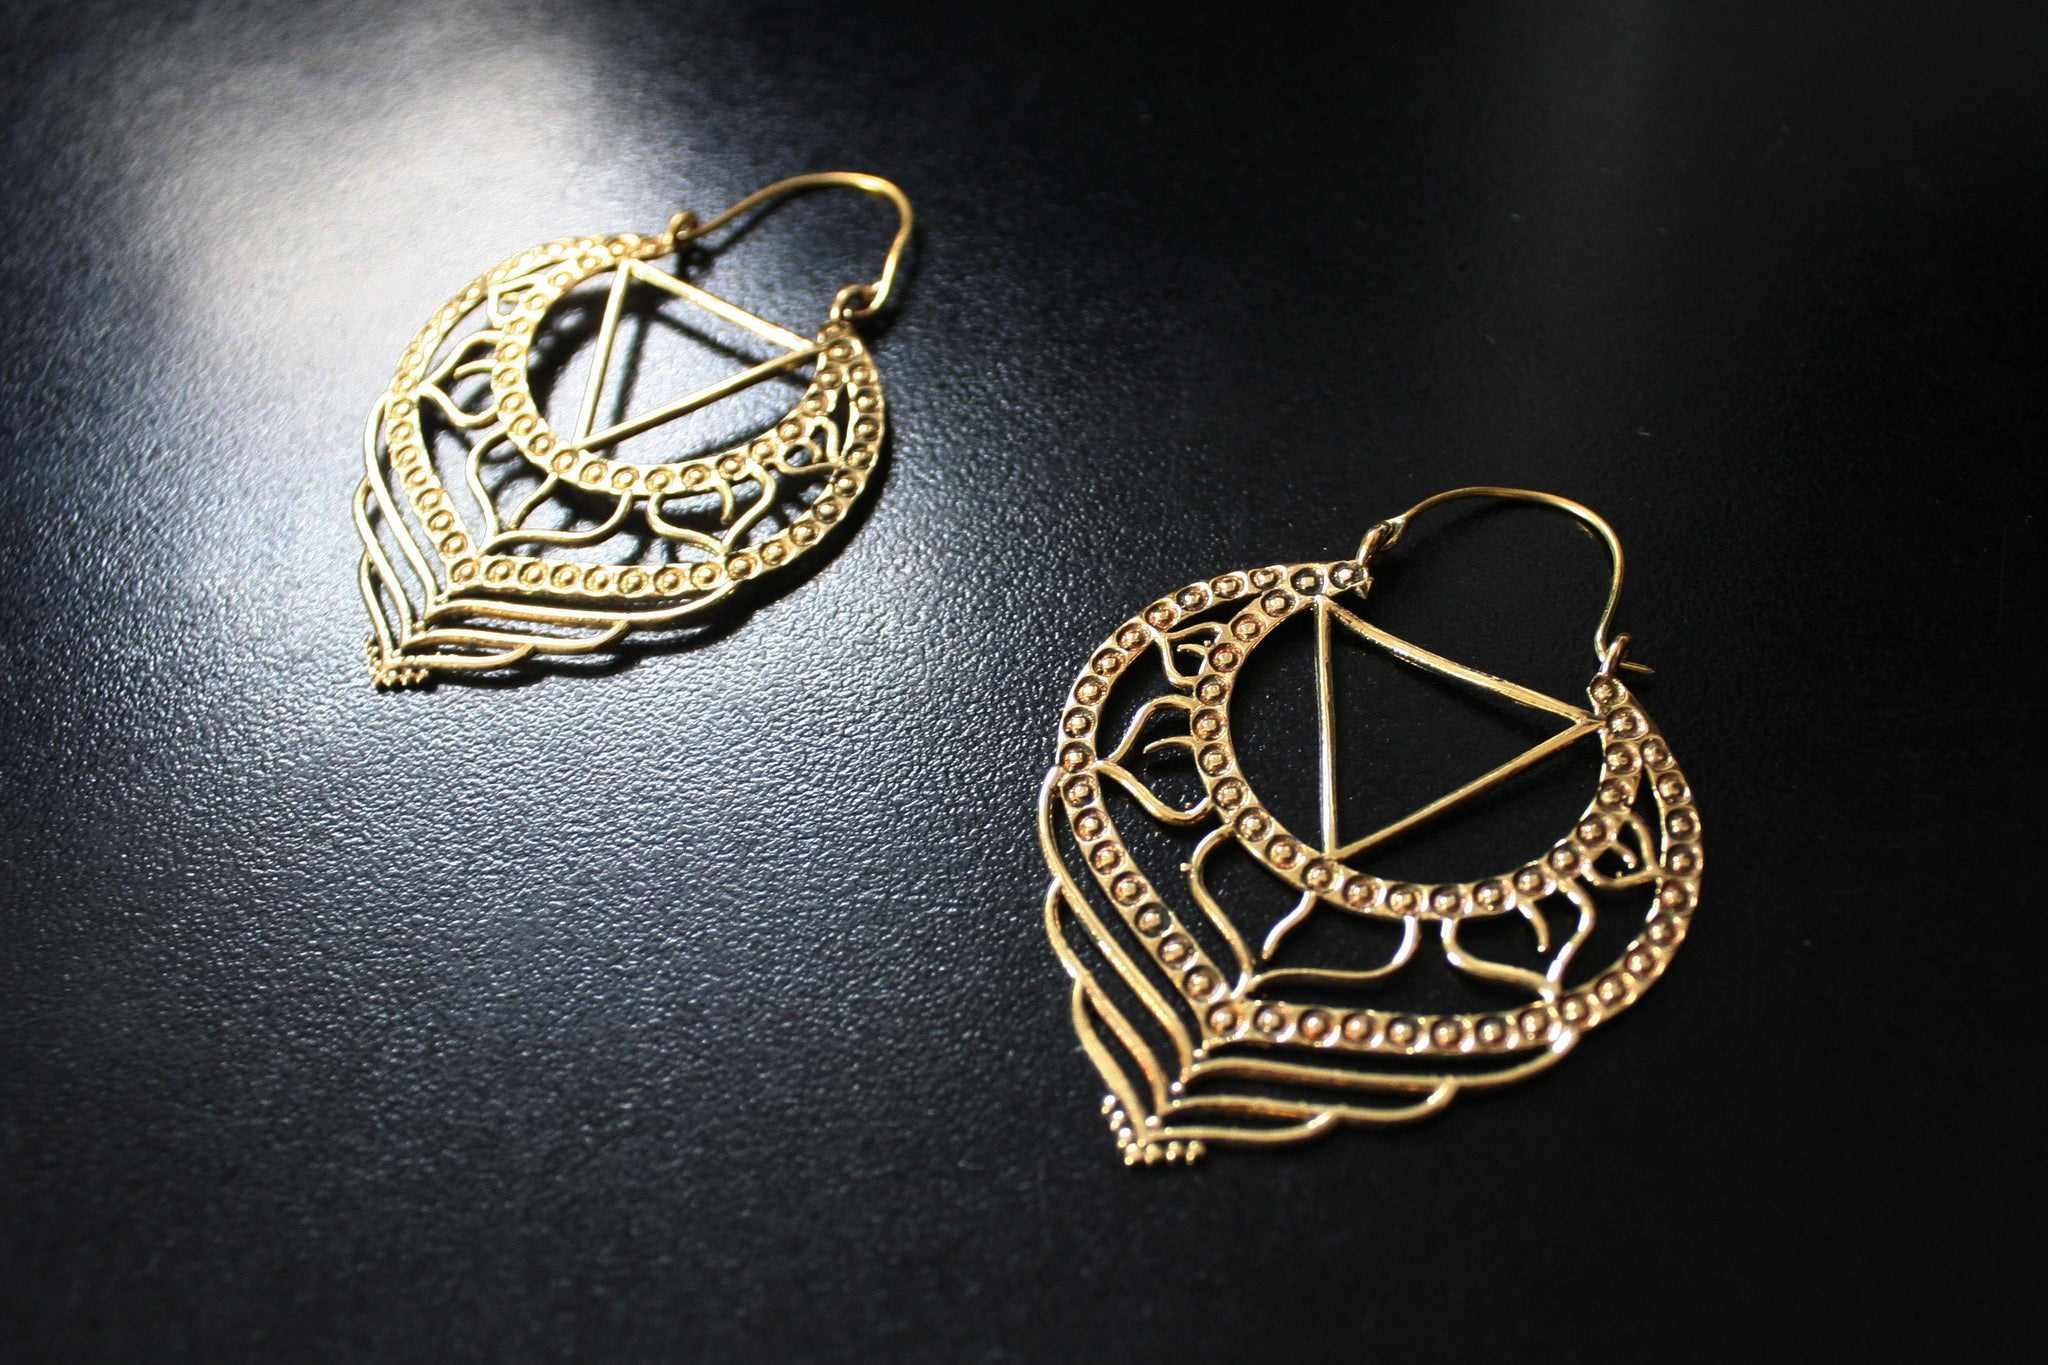 CHAKRA Earrings - Brass Earrings, Gypsy Earrings, Sacred Geometry Earrings, Brass Earrings, Geometric